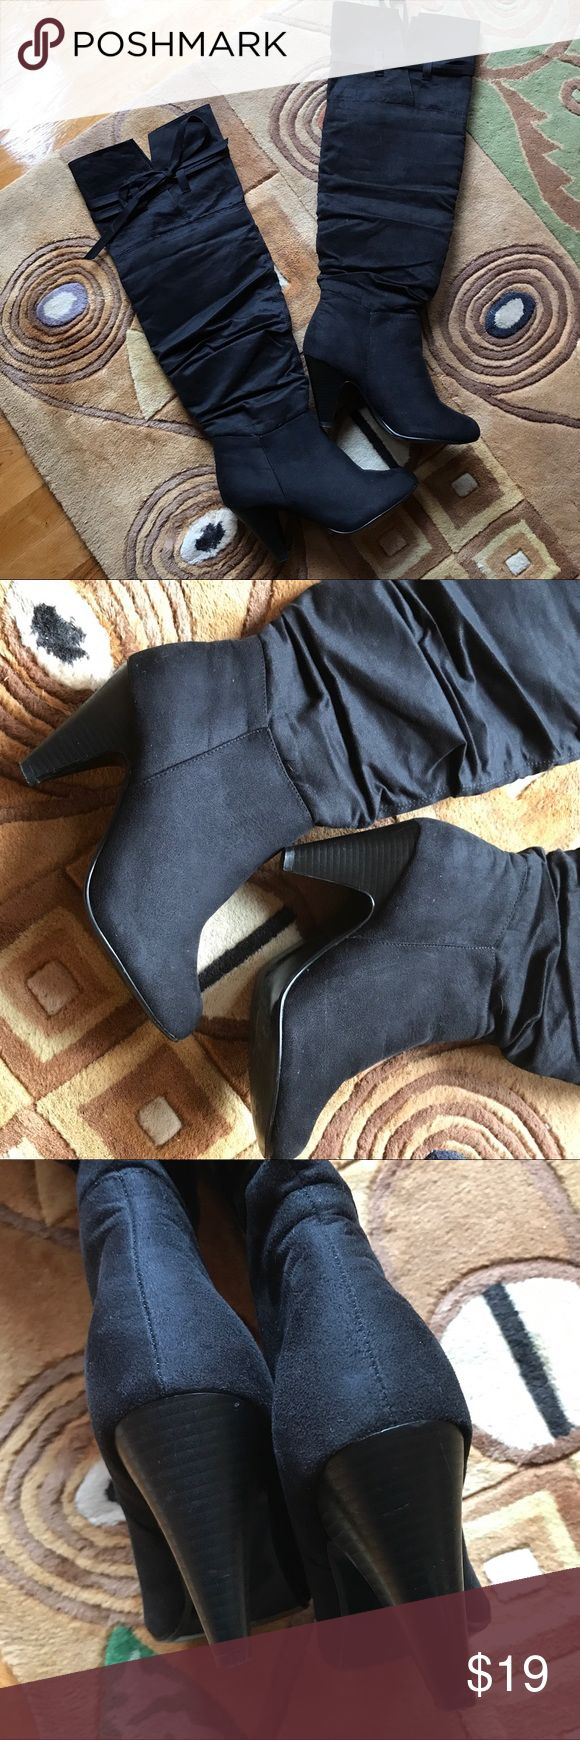 Thigh high boots Black man made suede. Can be folded over. Gathered/wrinkled design. Worn once. Shoes Over the Knee Boots